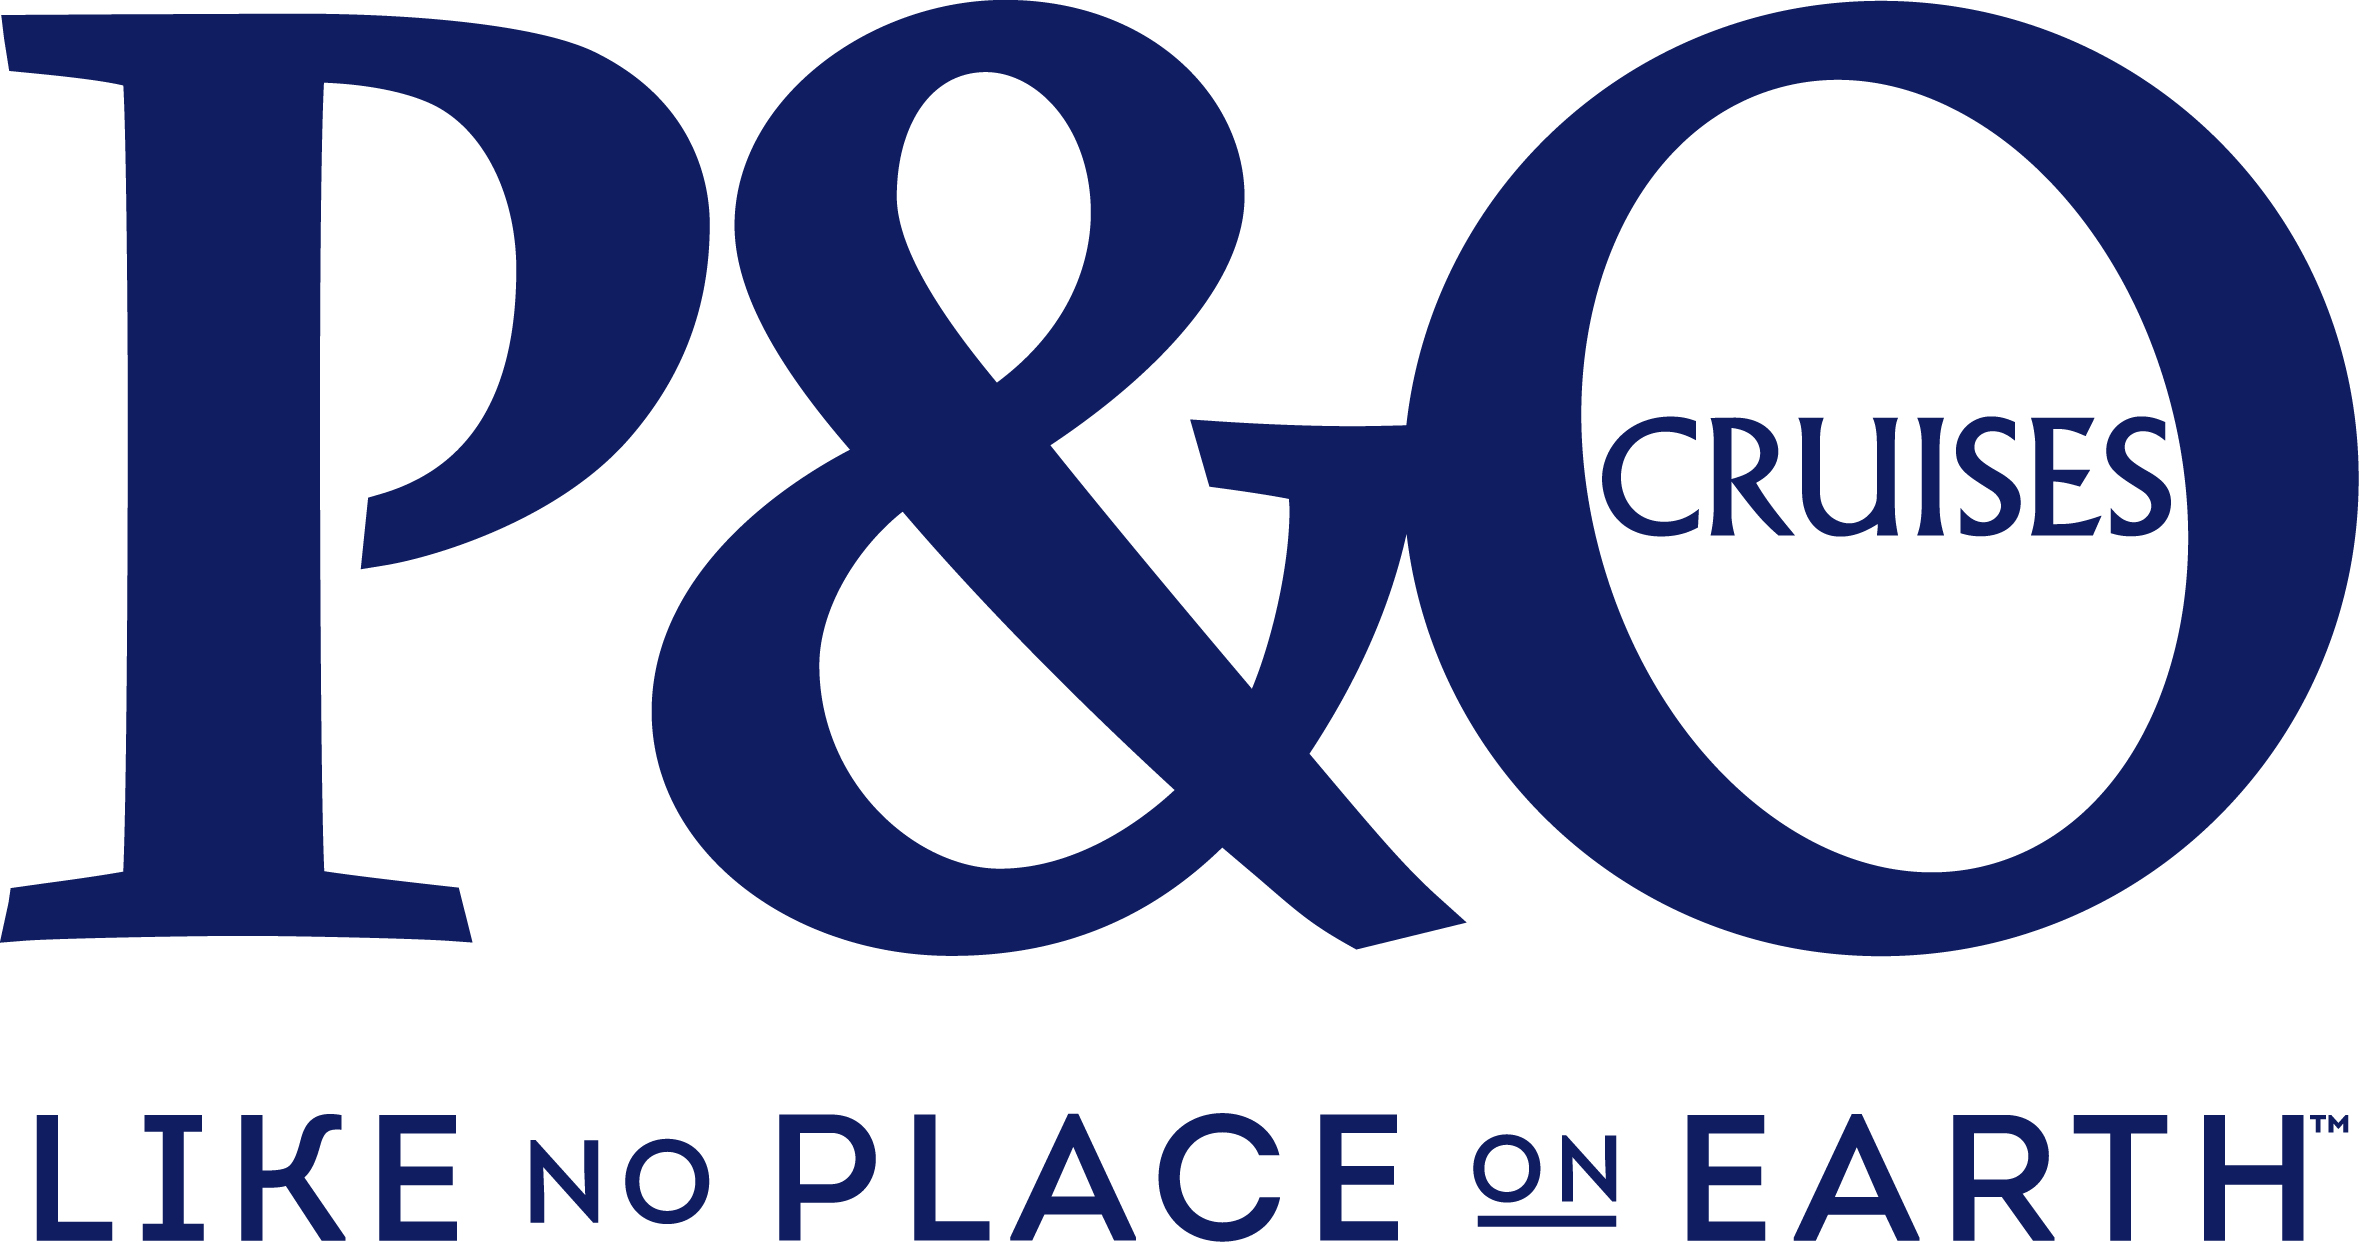 Image result for p&o cruises like no place on earth logo